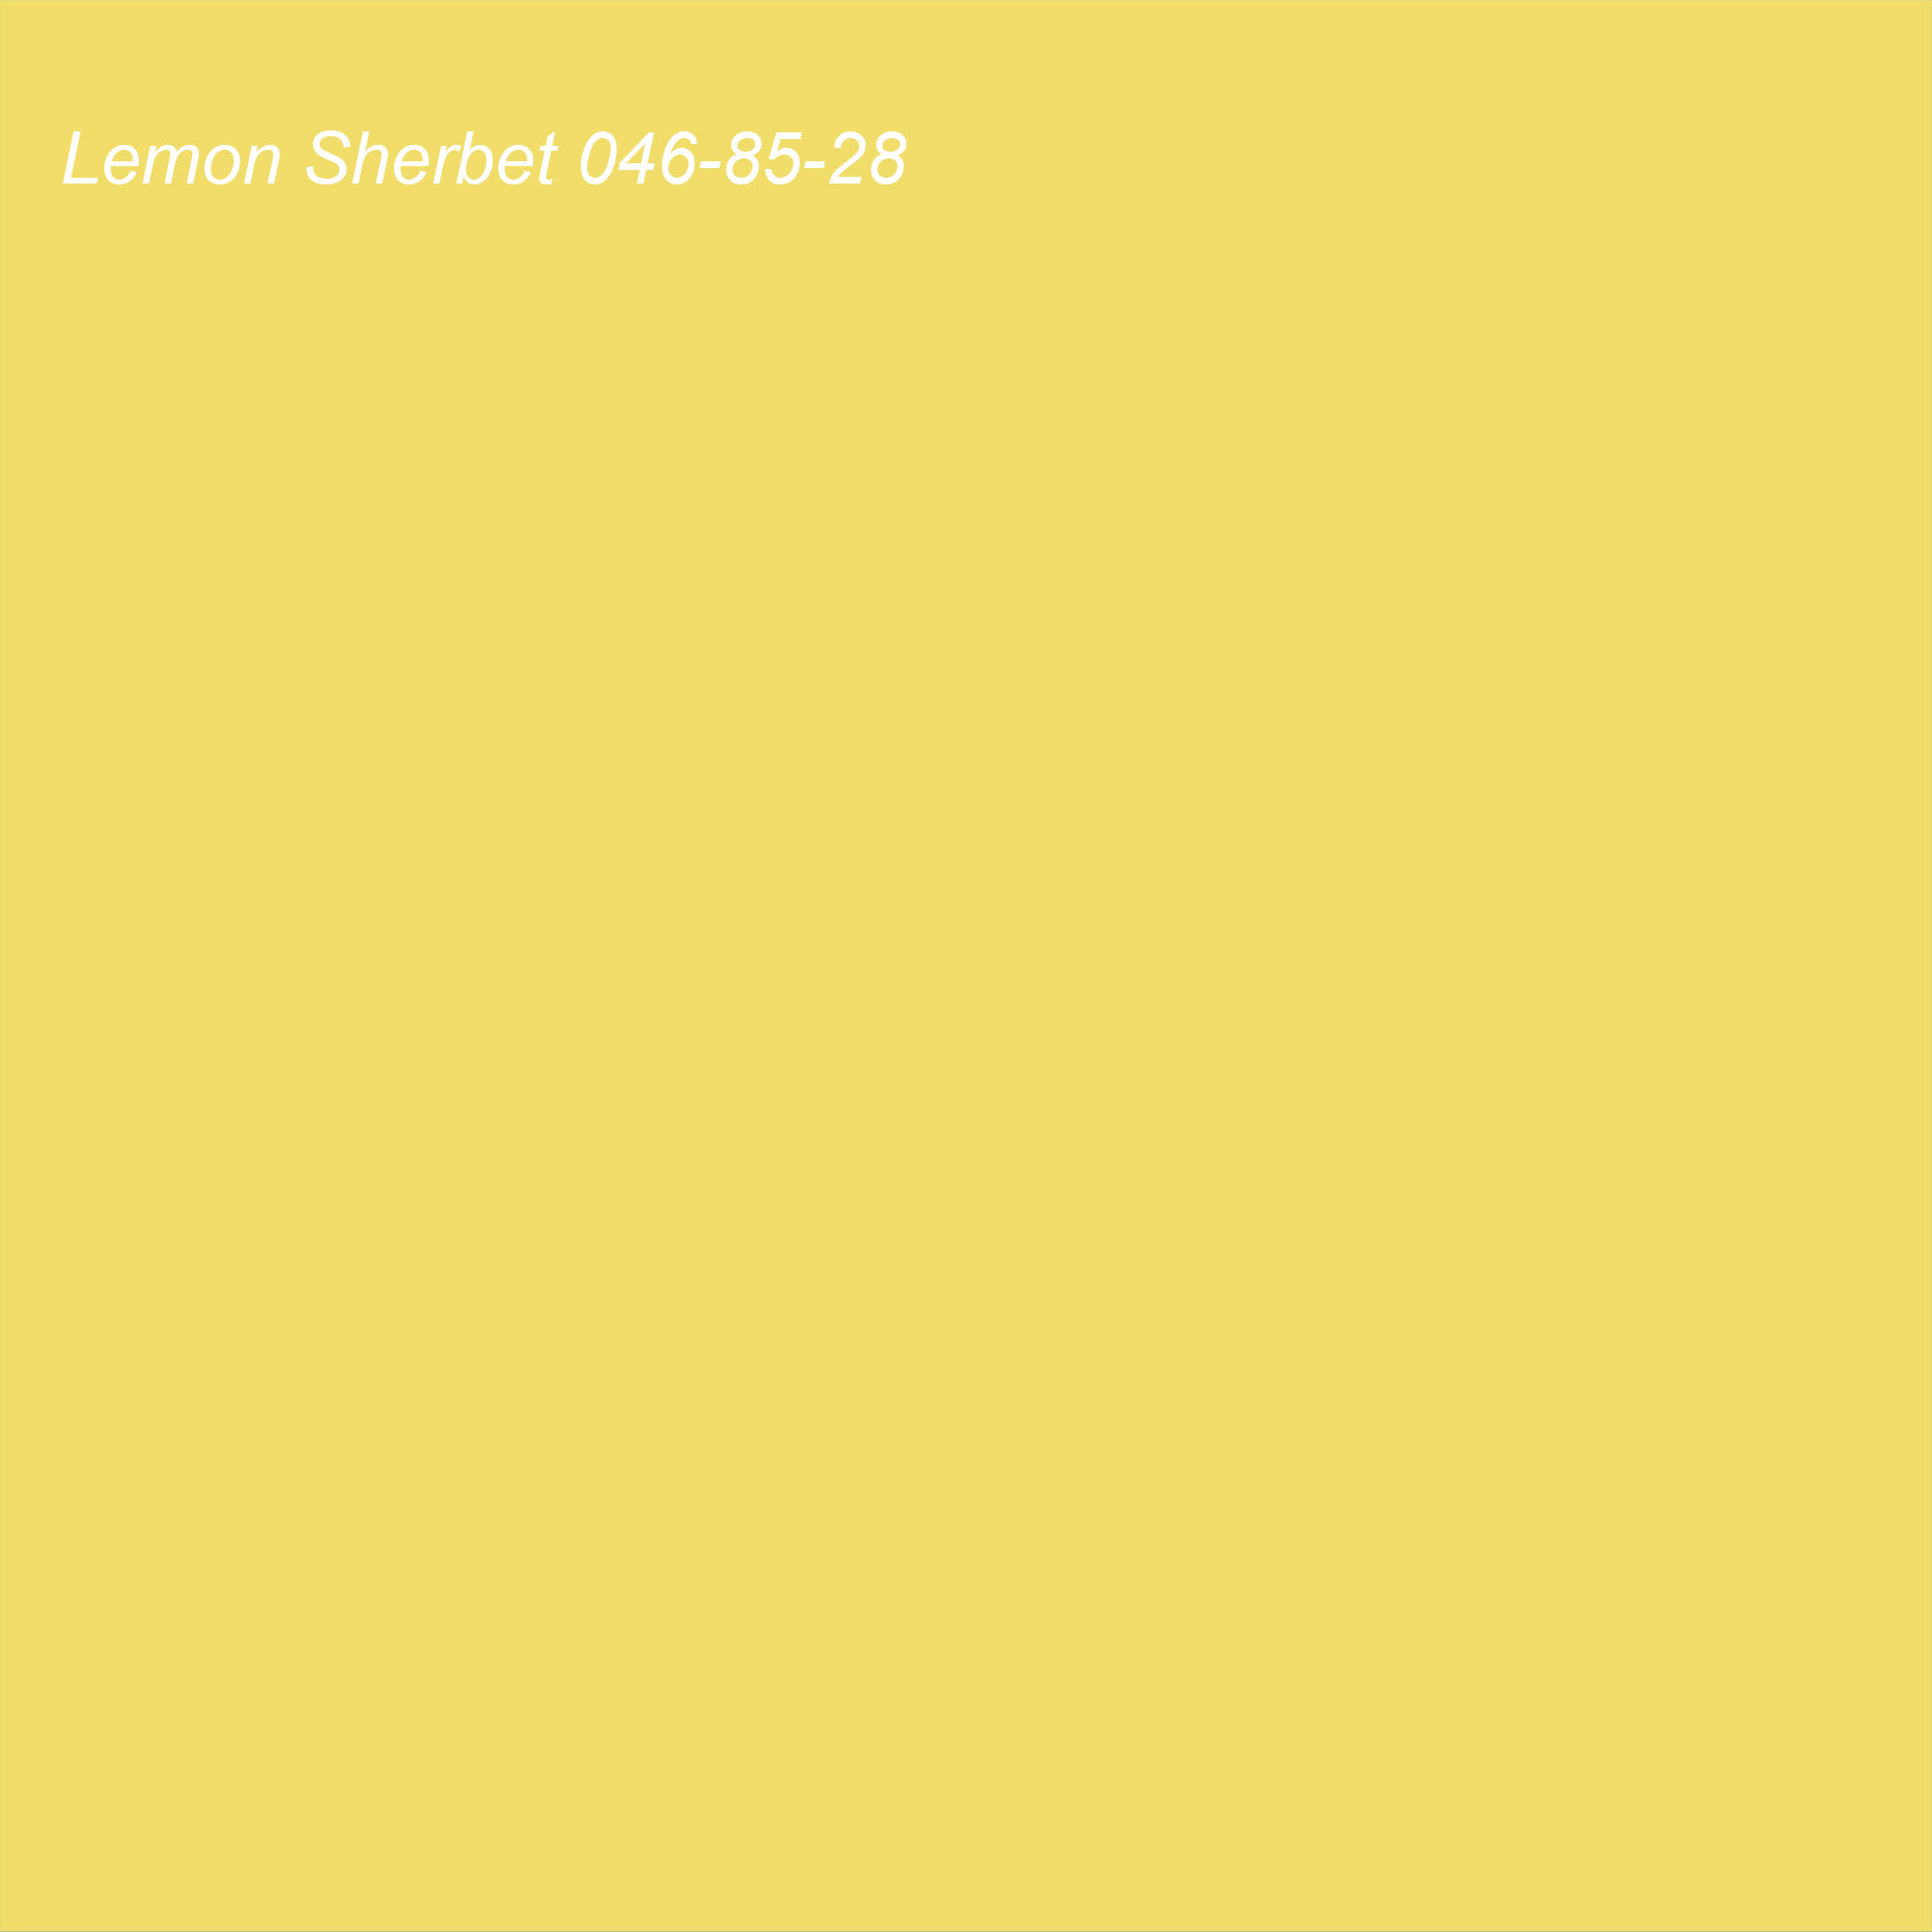 Coloro 2021 Color of the Year Suggested Accent Shade Lemon Sherbet (yellow) 046-85-28